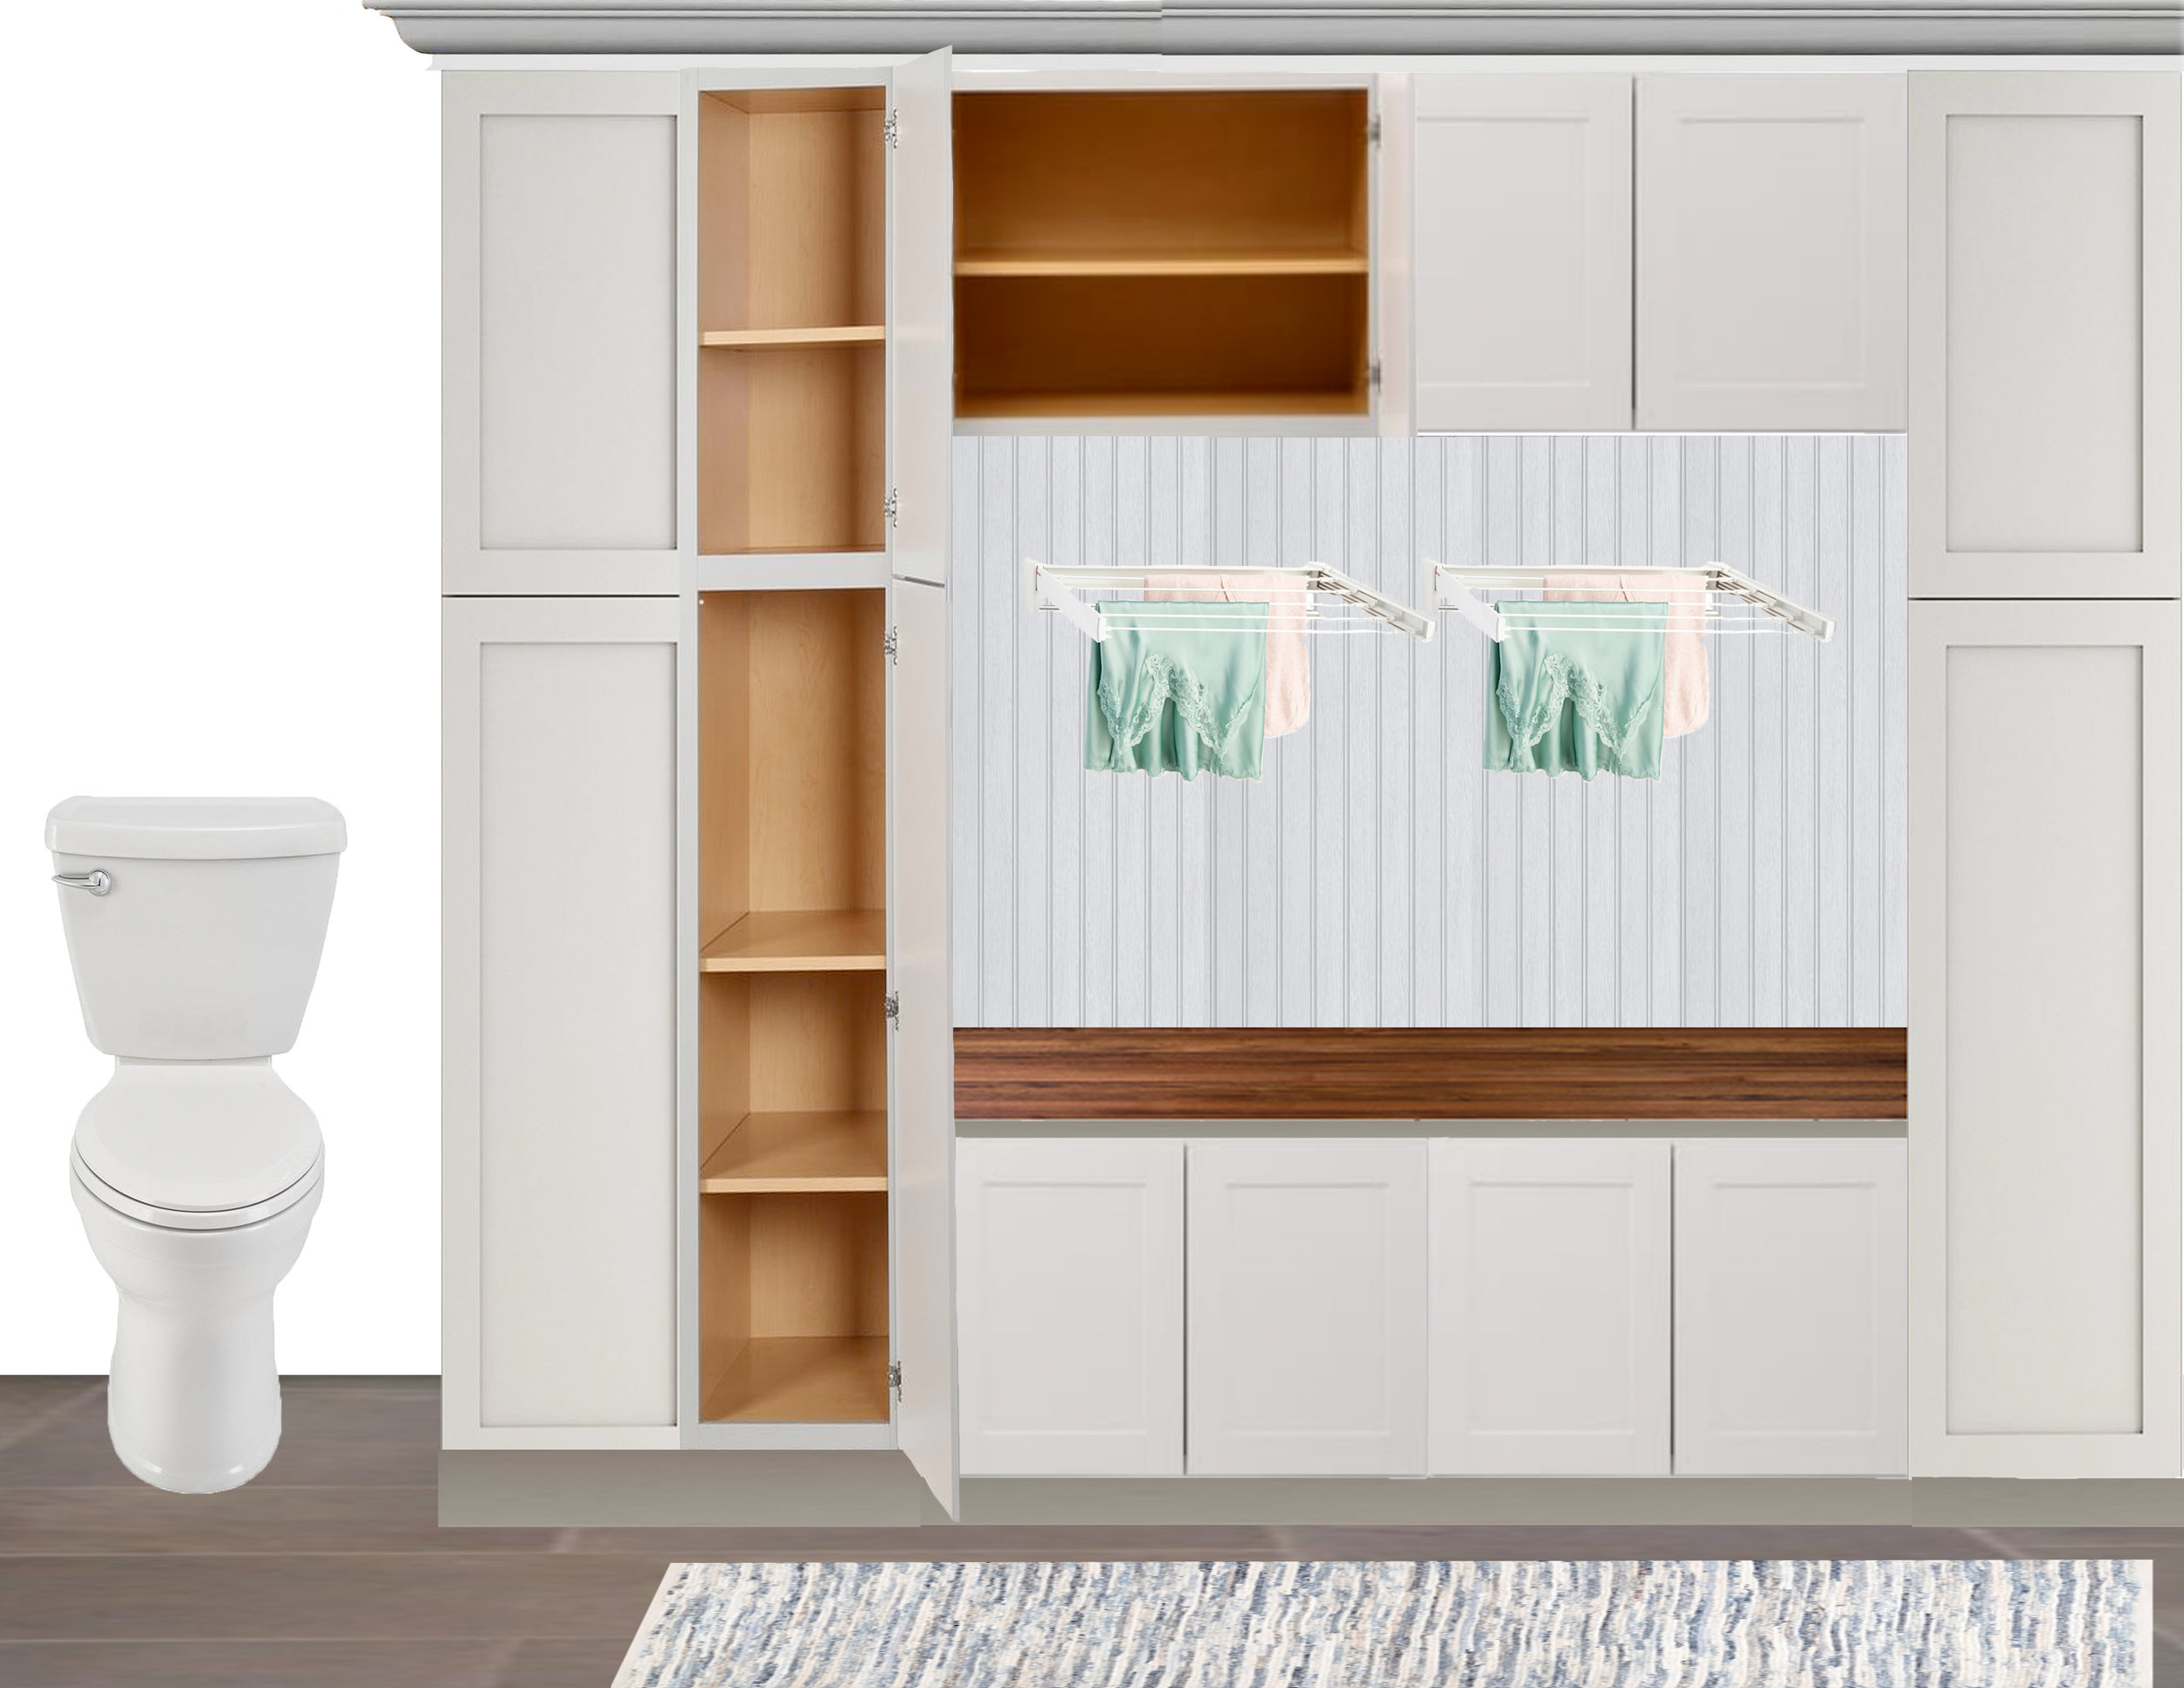 Final Design of Mudroom